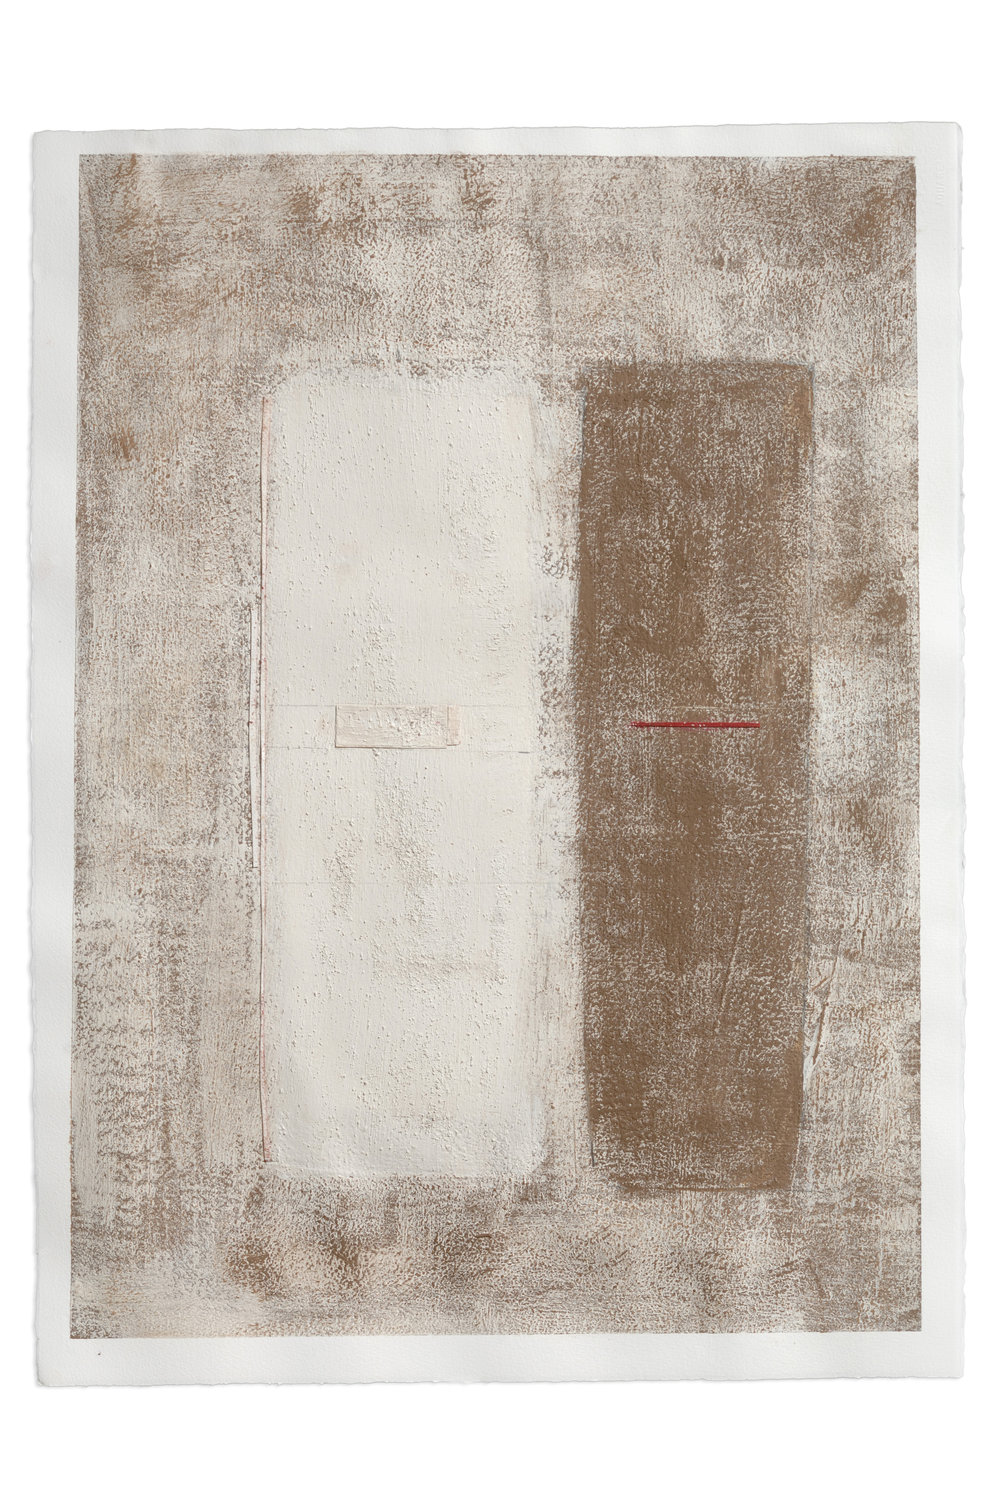 Toni Ross  Untitled (TR 455) , 2013 black clay, porcelain, grog, oil pastel, graphite and paper collage on paper 30 1/4 x 22 1/4 in.